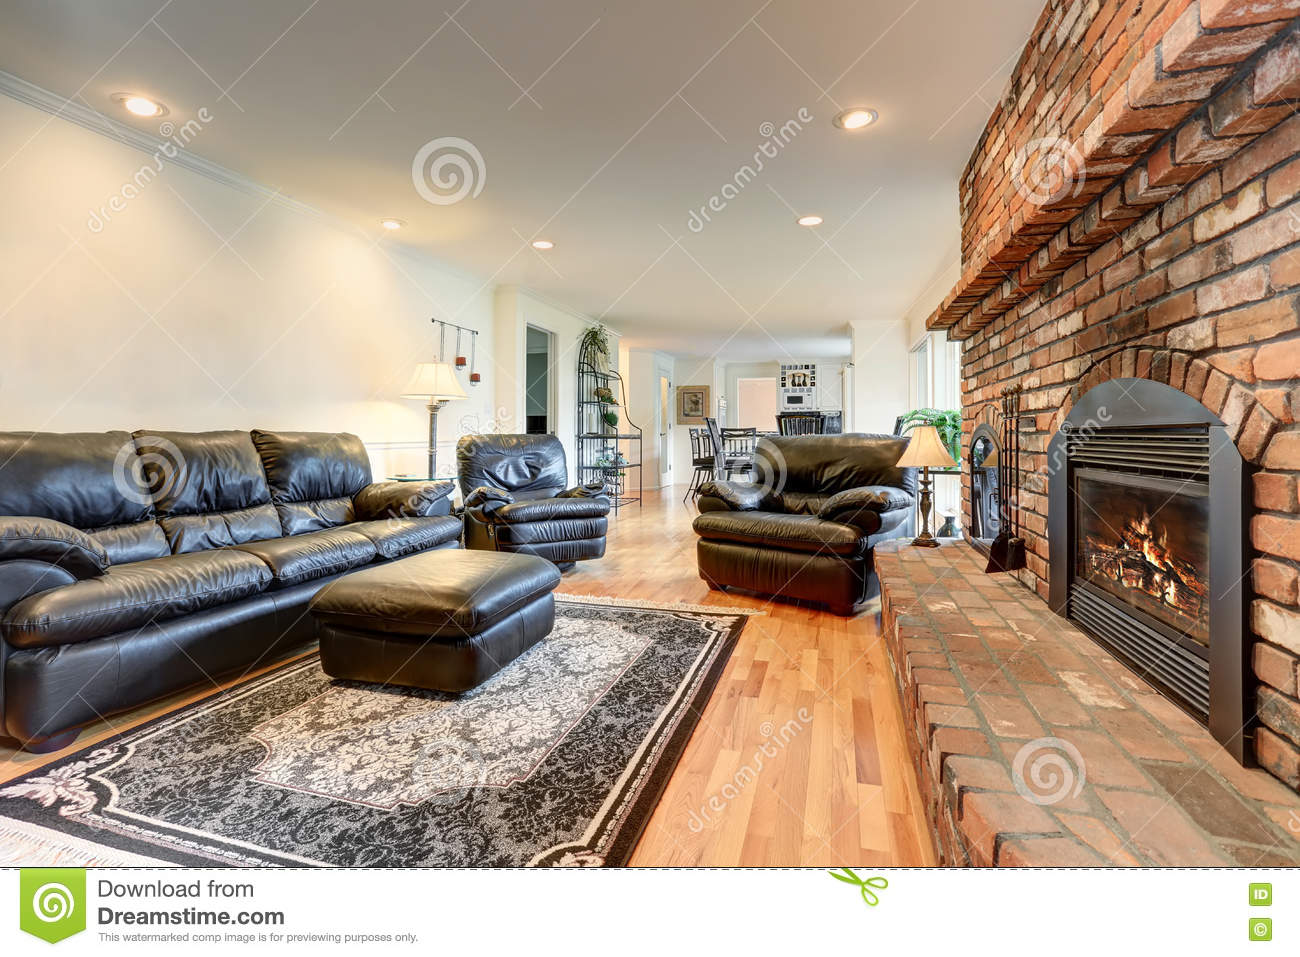 Luxury Living Room Interior With Black Leather Sofa Set And Brick Fireplace